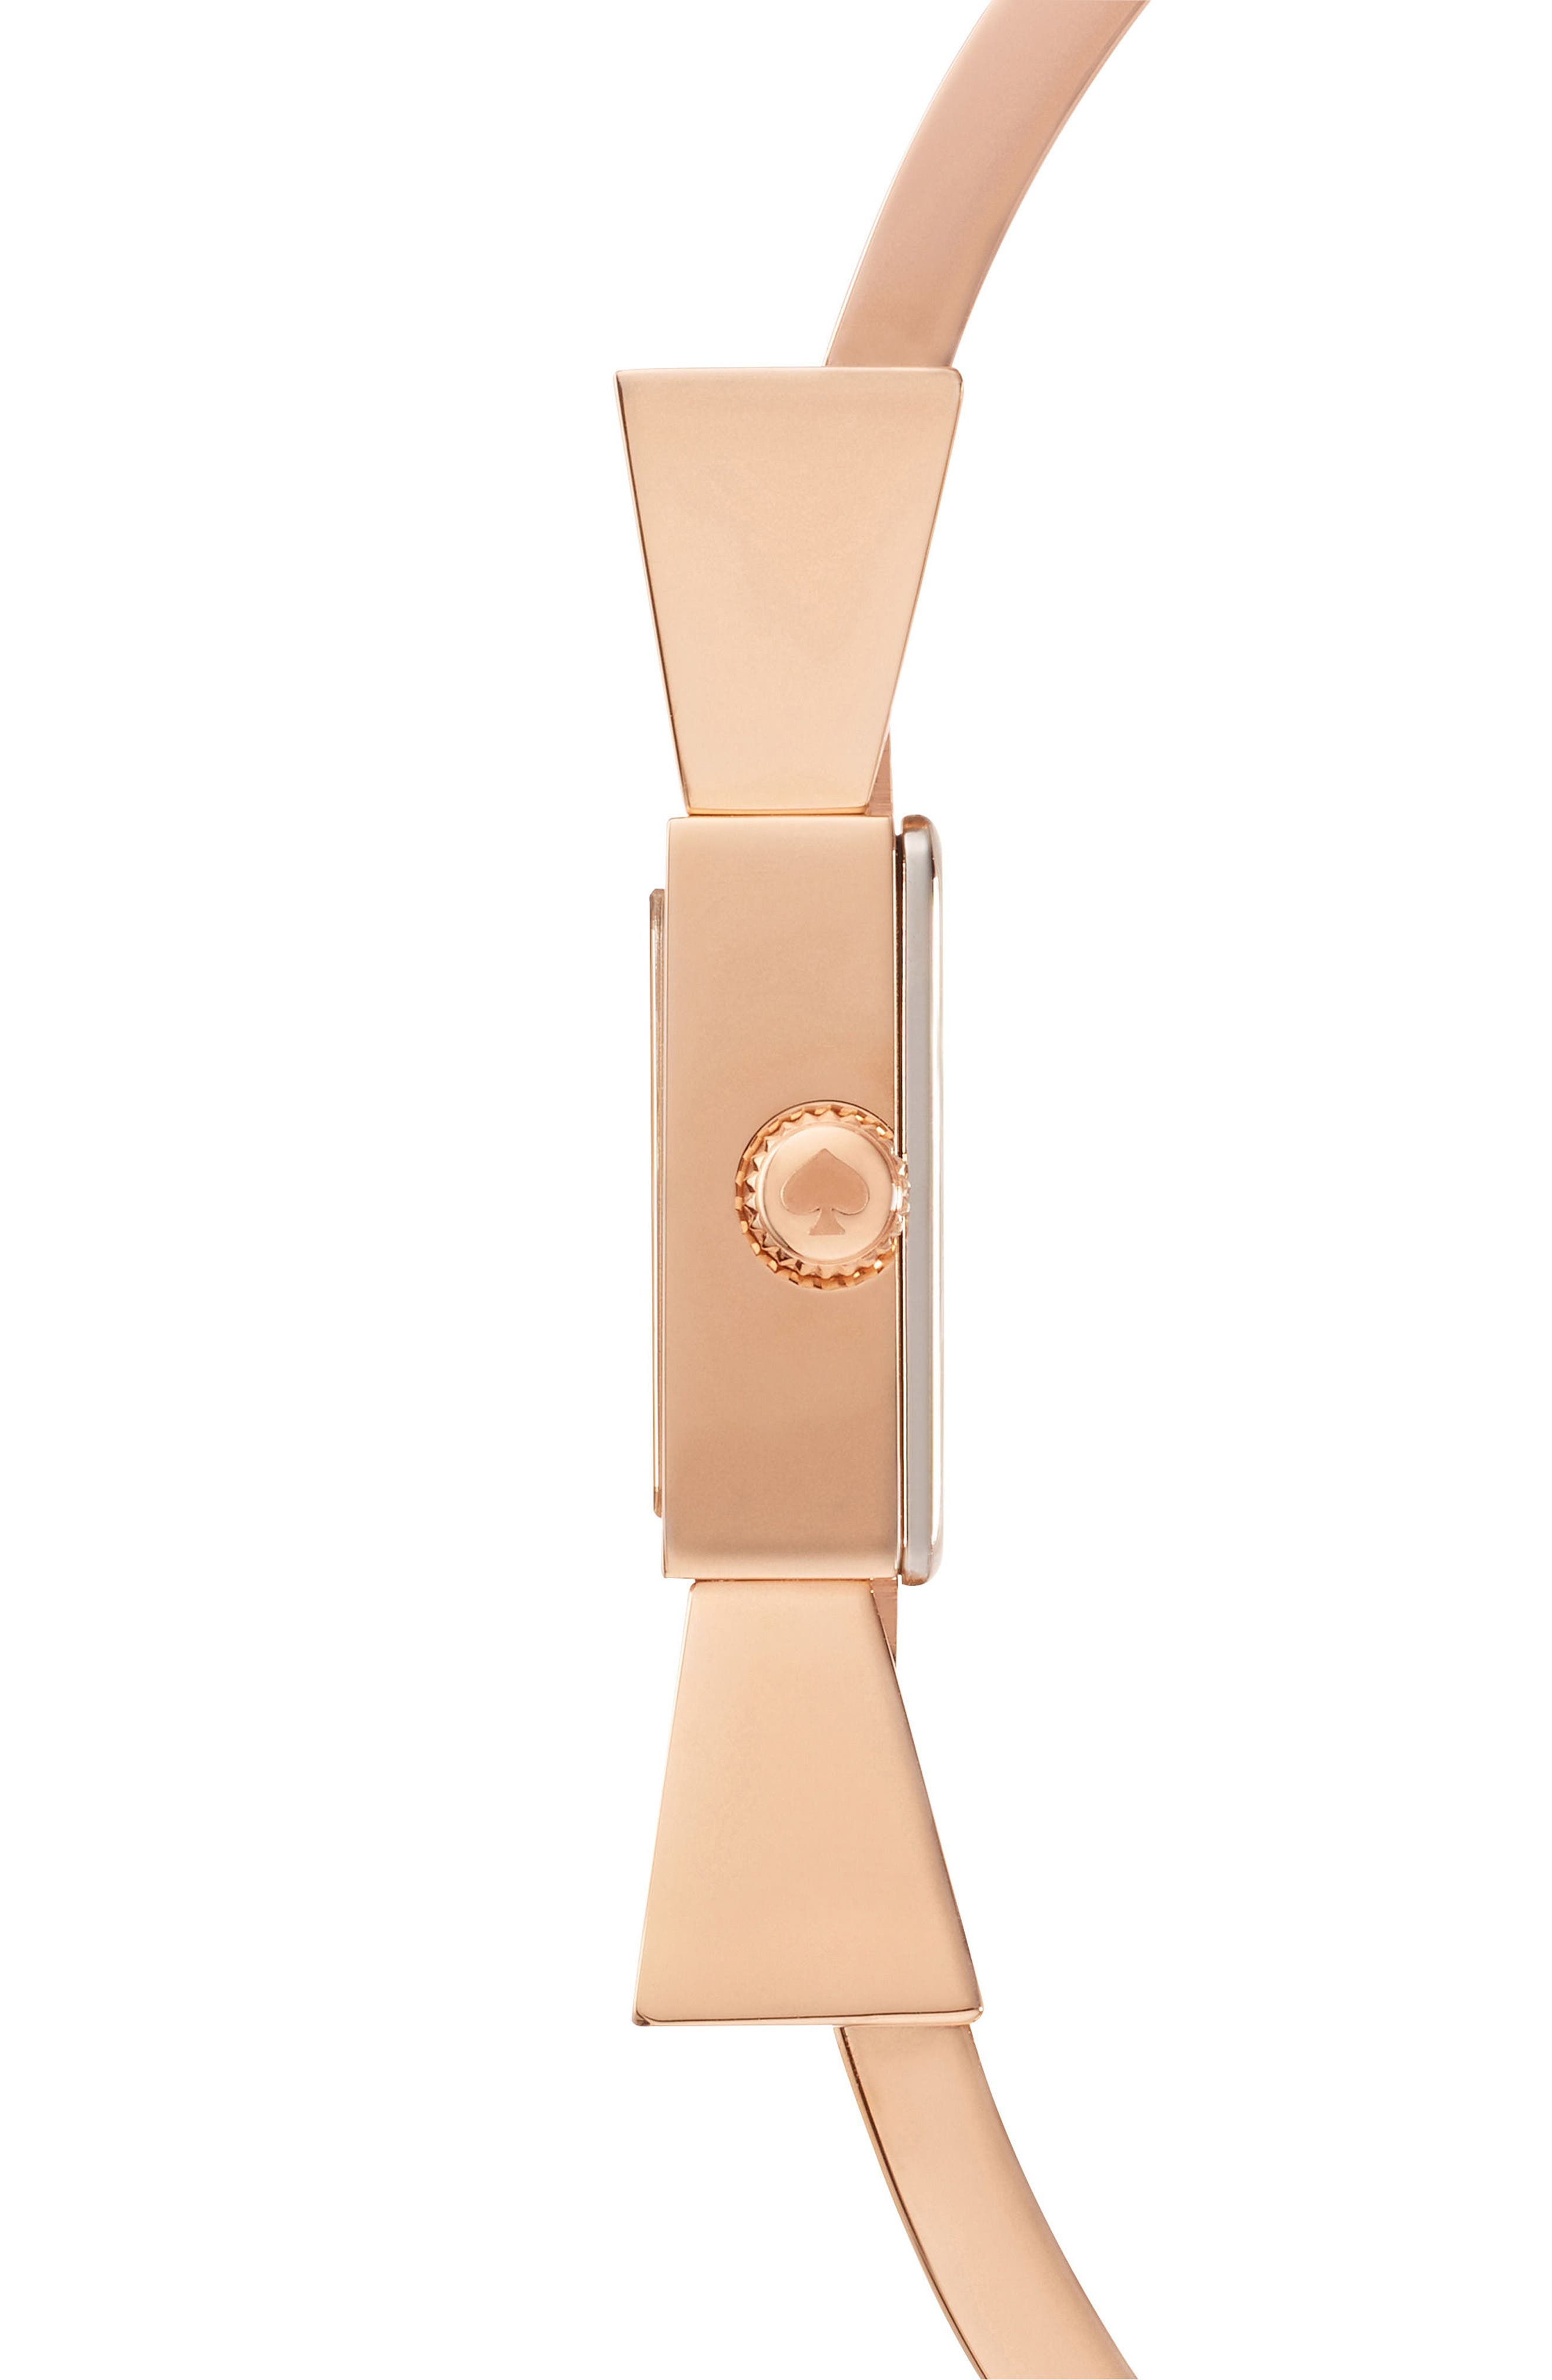 carlyle bow bangle watch, 16mm,                             Alternate thumbnail 3, color,                             White/ Rose Gold